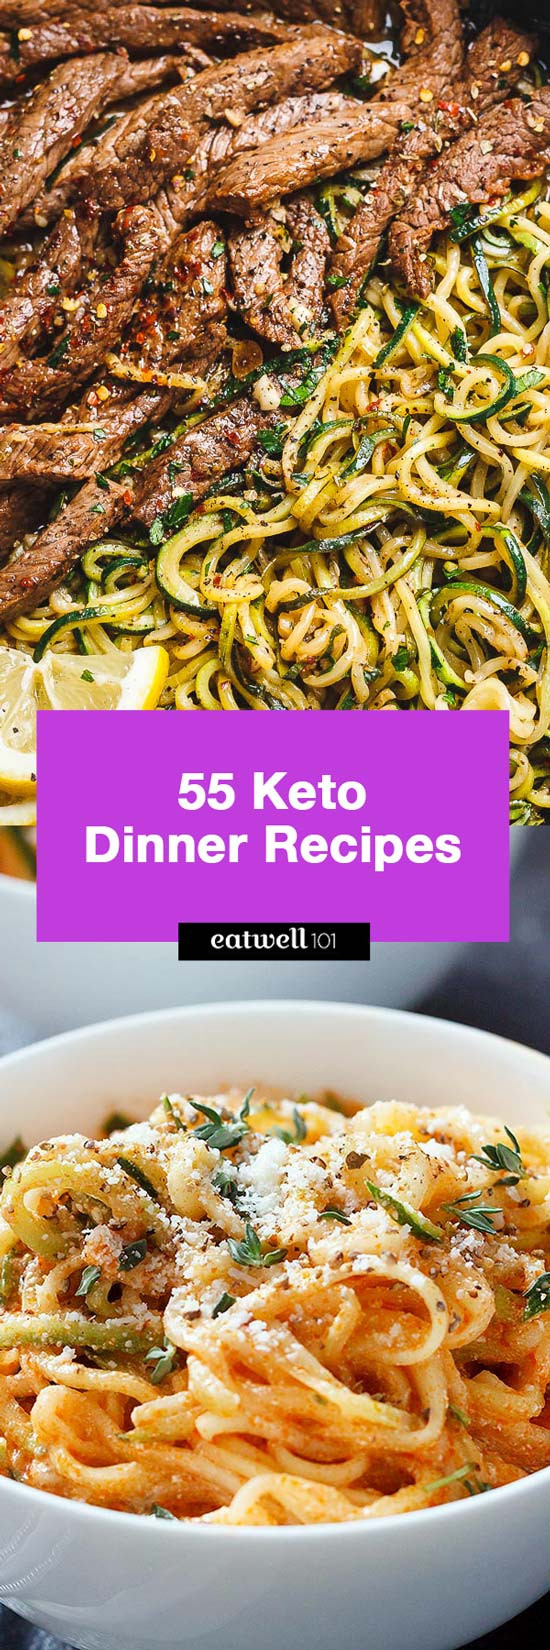 Easy Keto Dinner Recipes  Easy Keto Dinner Recipes – 65 Quick Recipe ideas for Keto